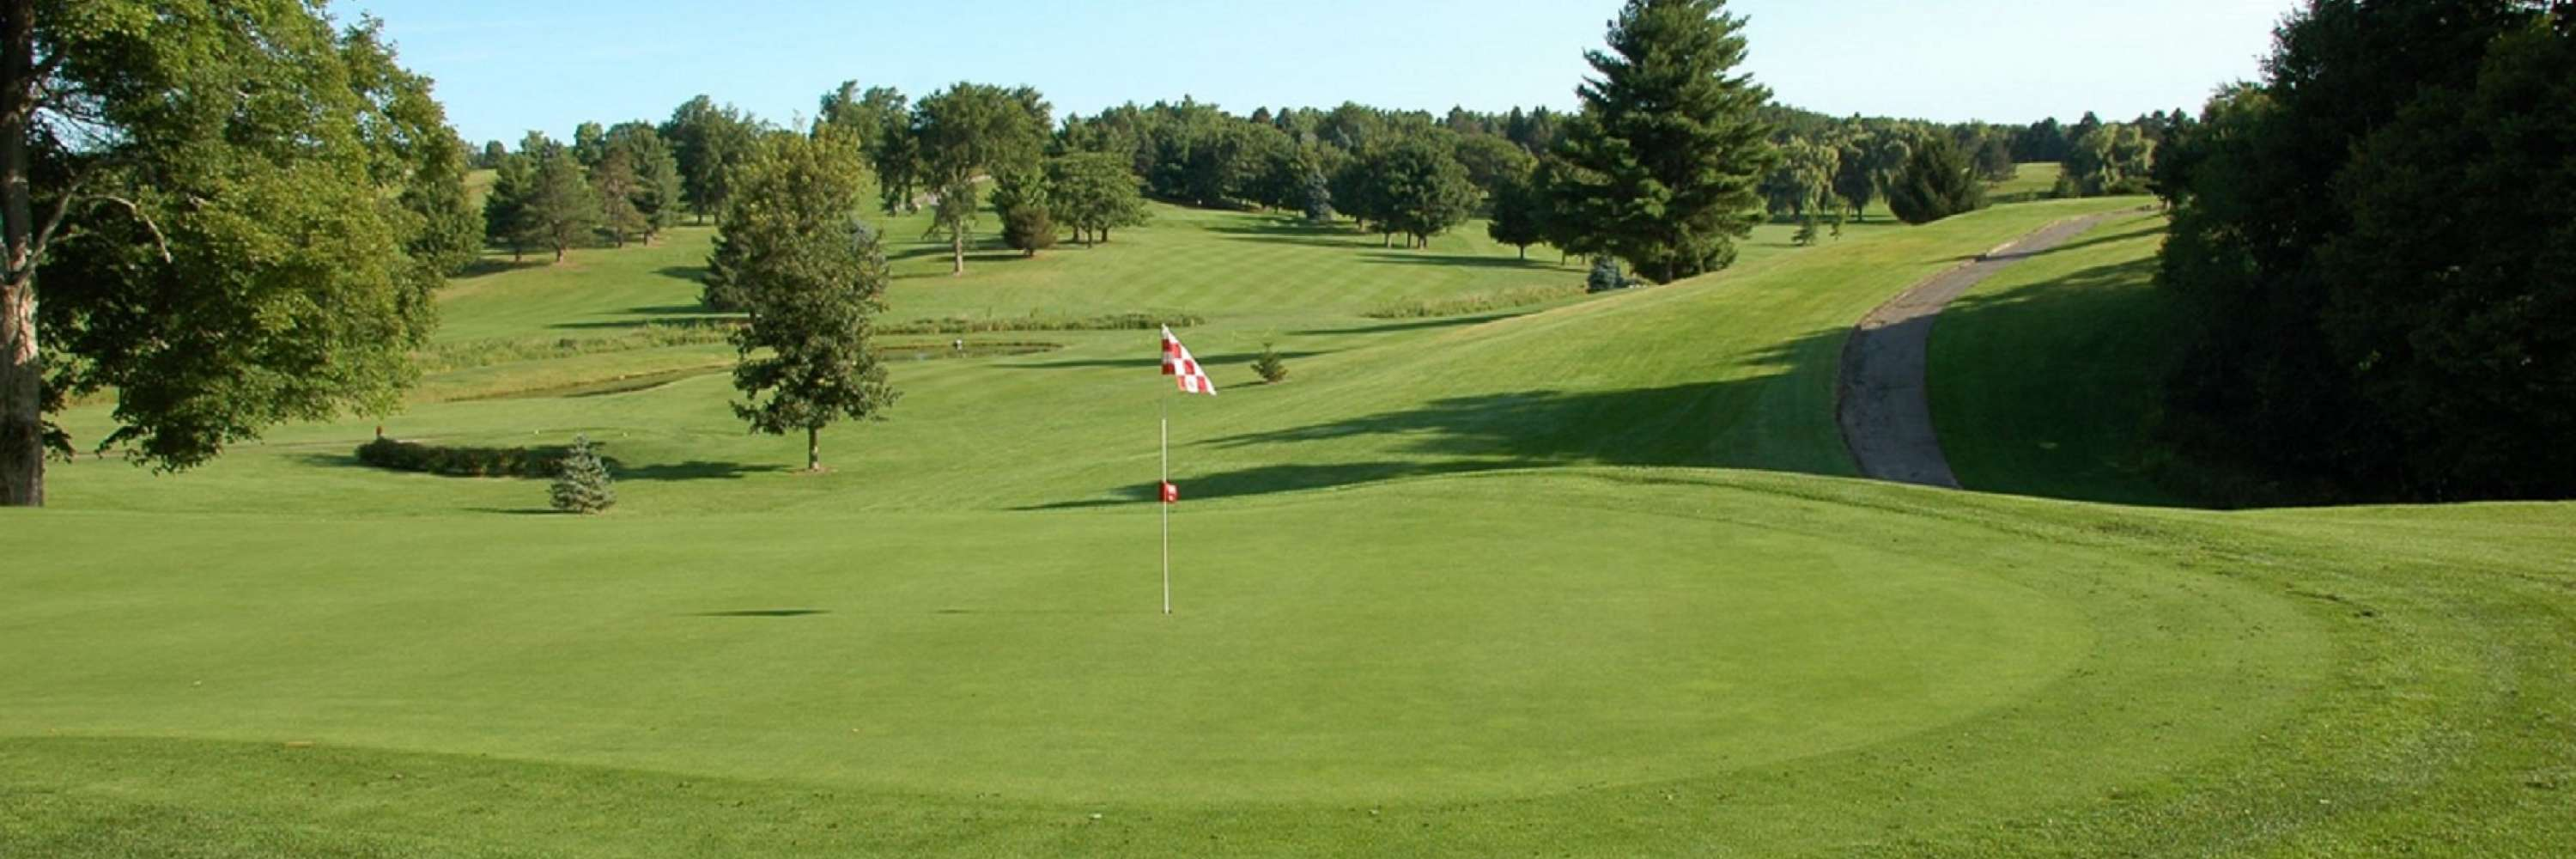 view from the green, flag in hole, green pines way in back, very hilly rolling terrain, bright blue sky